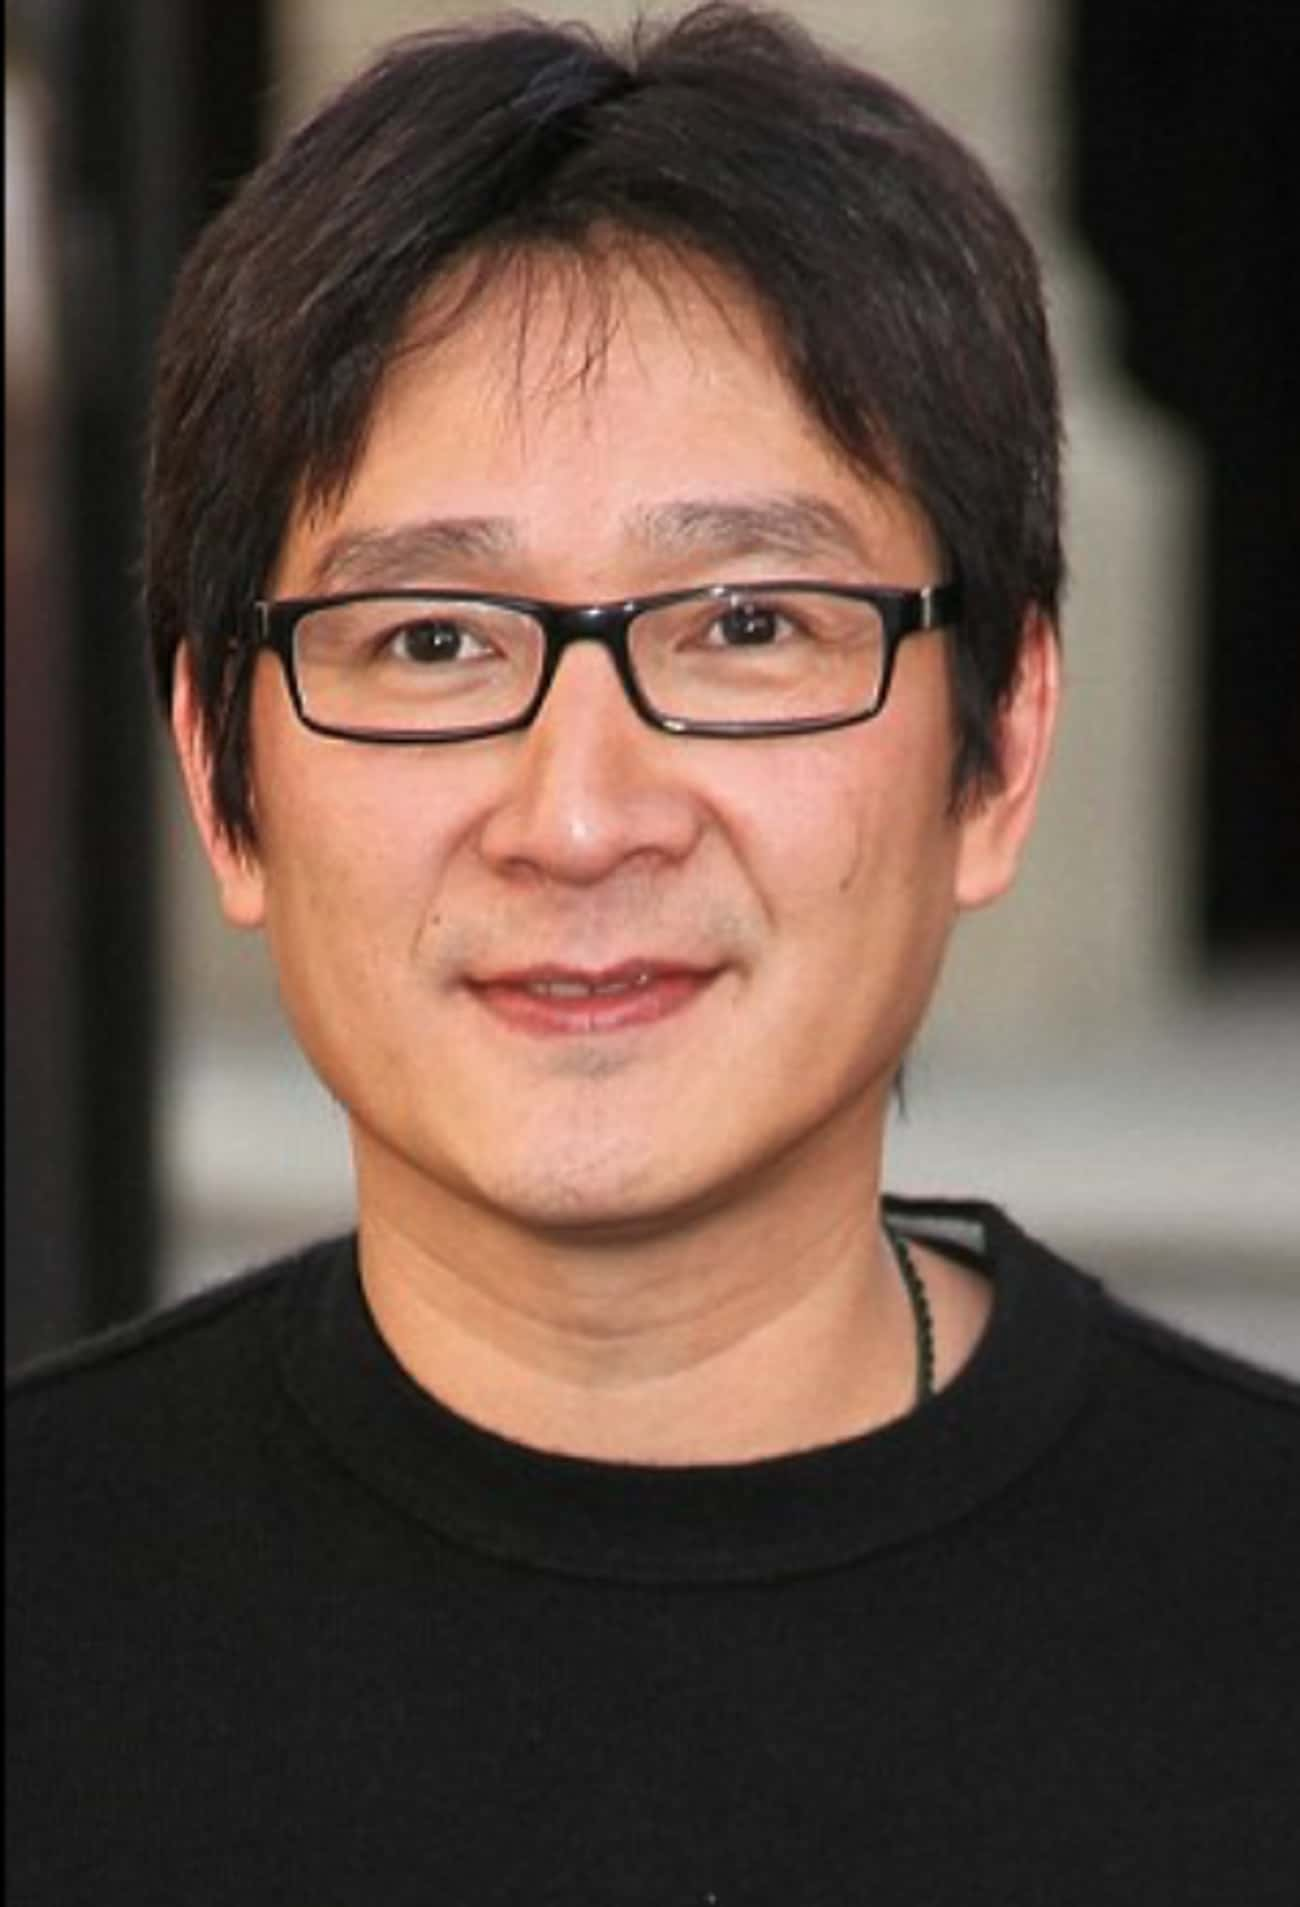 Jonathan Ke Quan - South Vietn is listed (or ranked) 4 on the list 30+ Famous People Born in Countries That Don't Exist Anymore